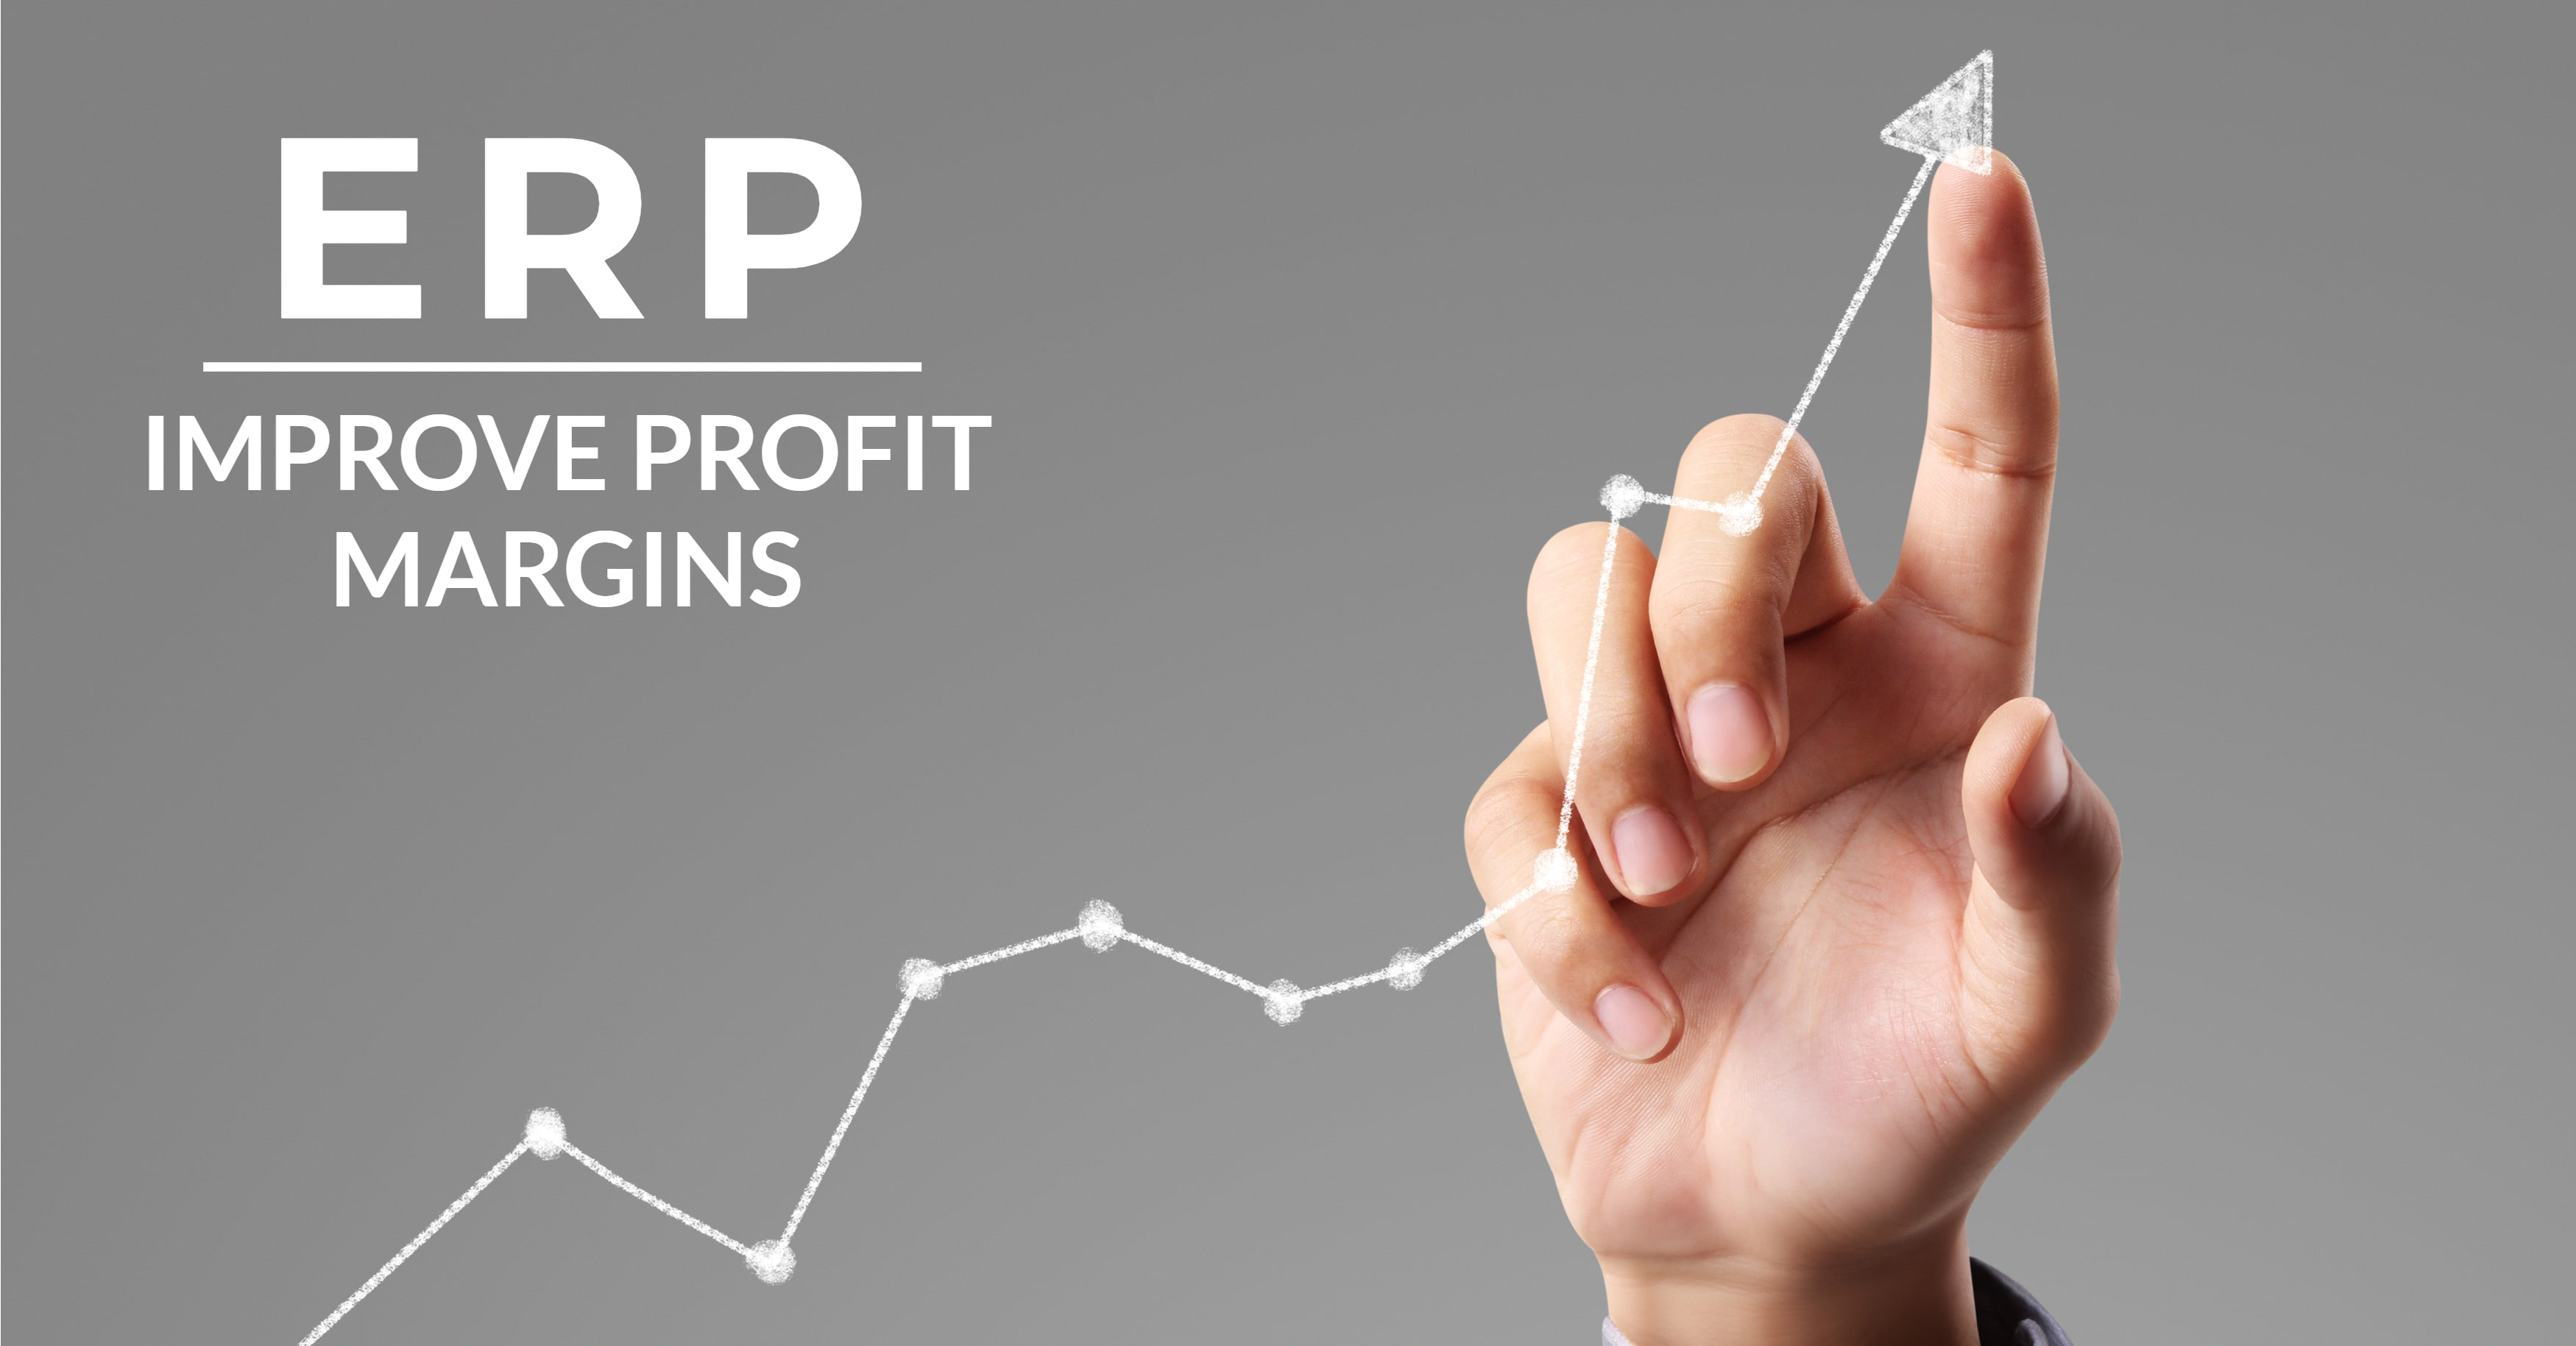 Improve Profit Margins with ERP Software